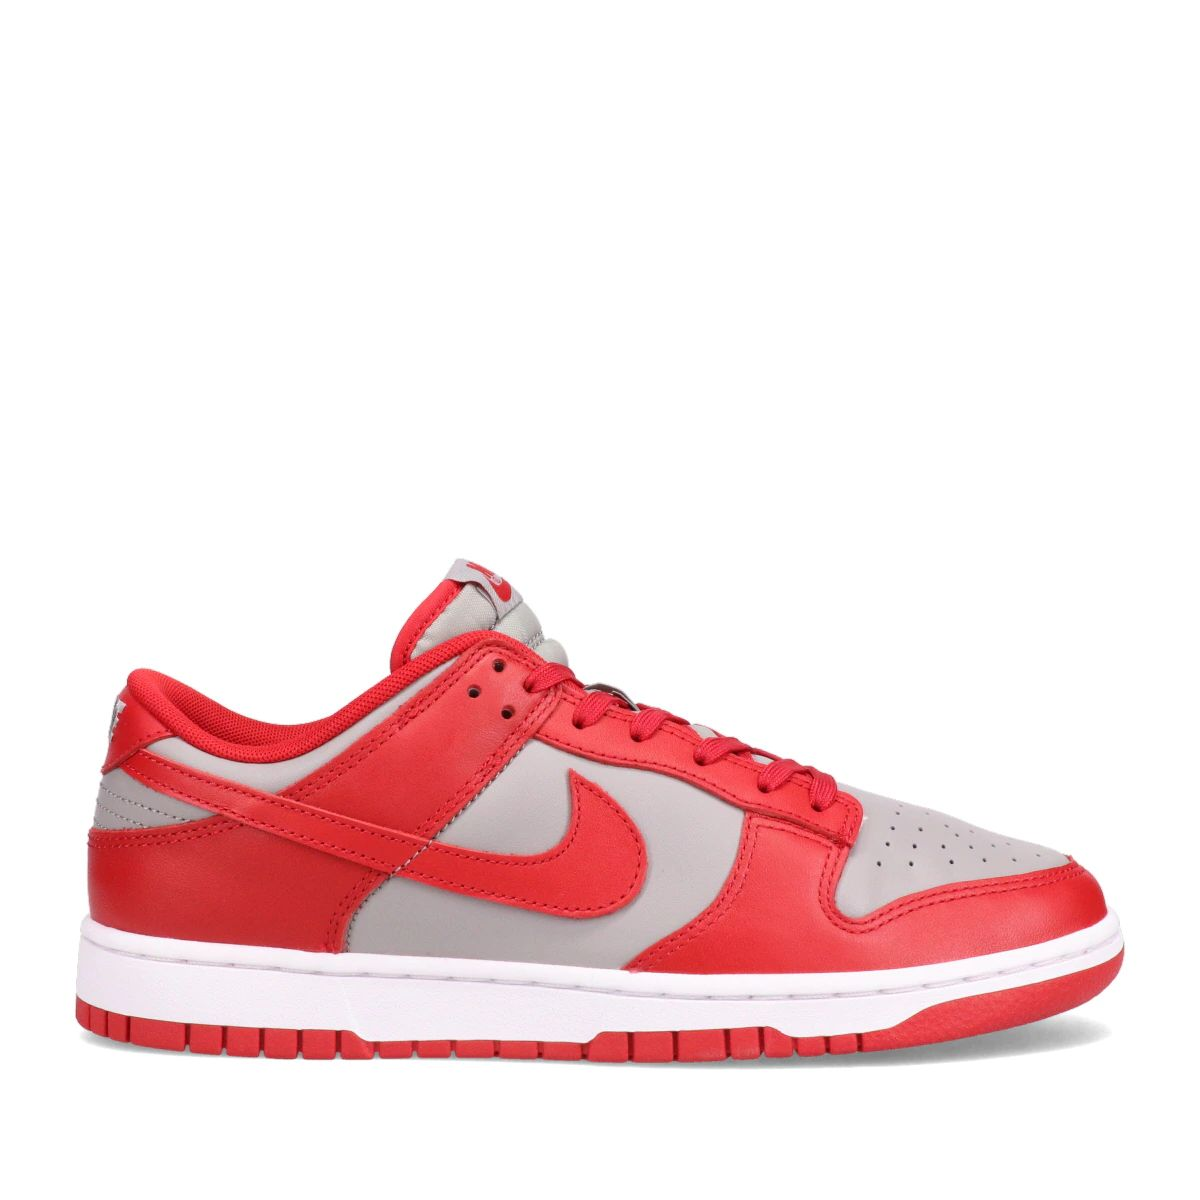 nike-dunk-low-univ-red-dd1391-002-release-20210107